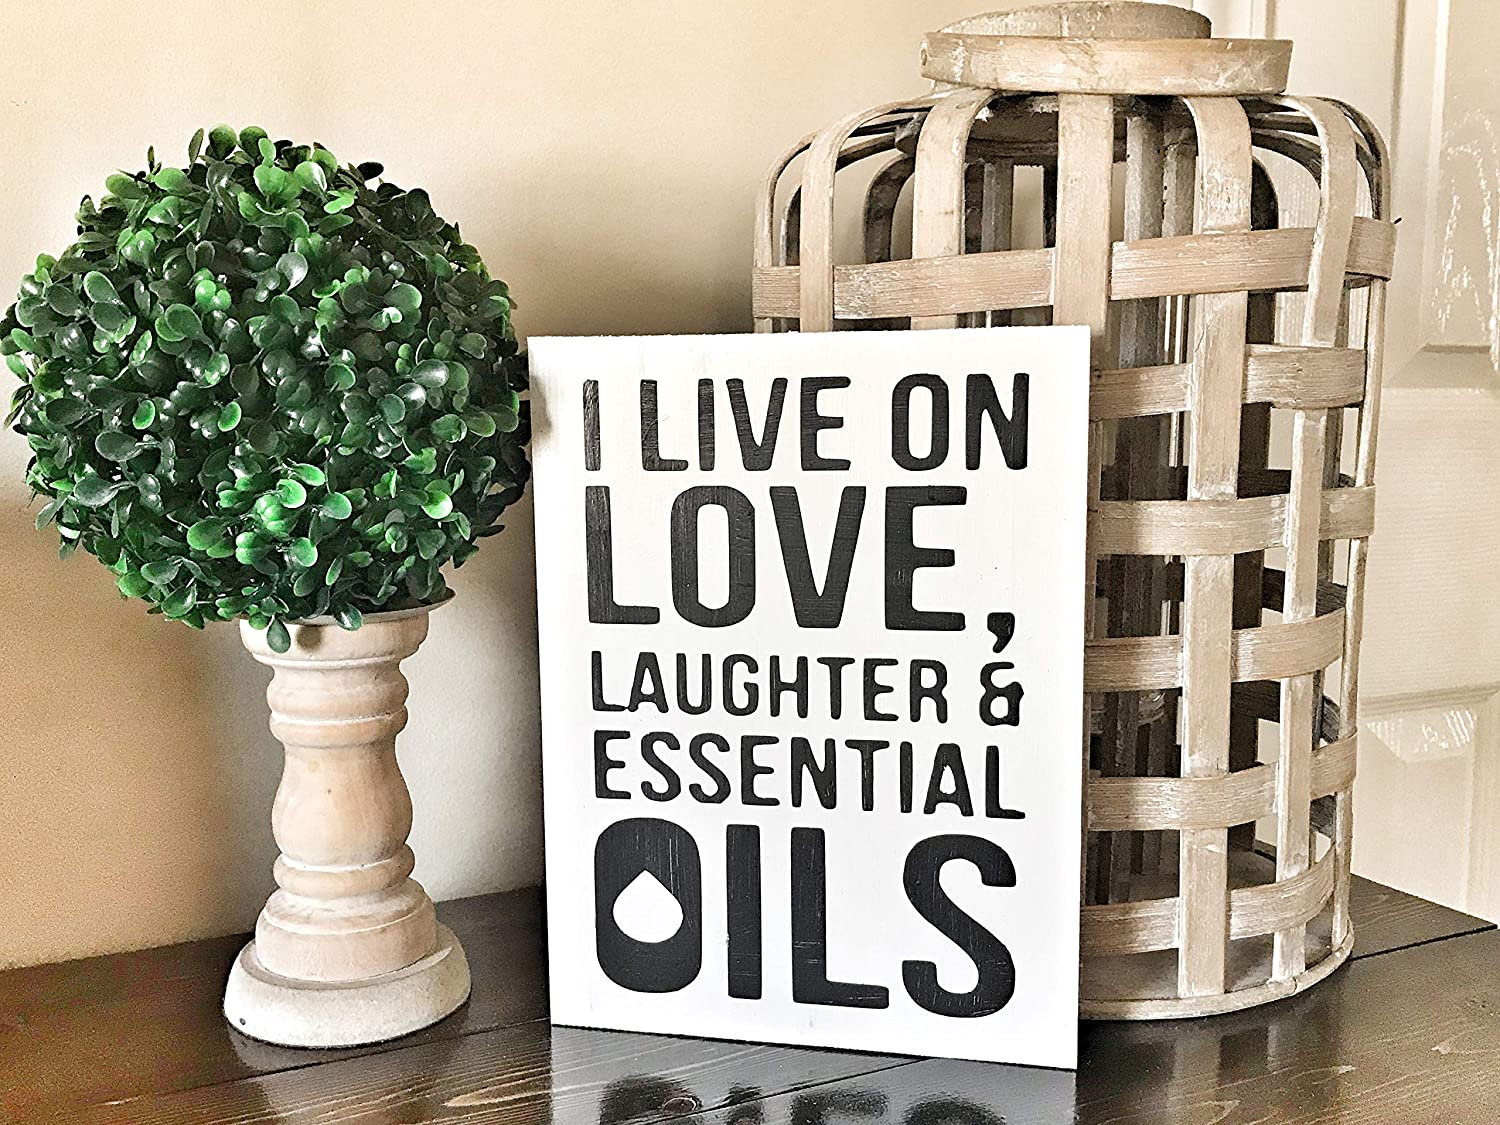 43LenaJon Essential Oils Love, Laughter & Essential Oils Wood Sign,Rustic Wood Wall Sign,Hanging Wood Sign Decor for Garden,Personalized Wooden Farmhouse Welcome Label